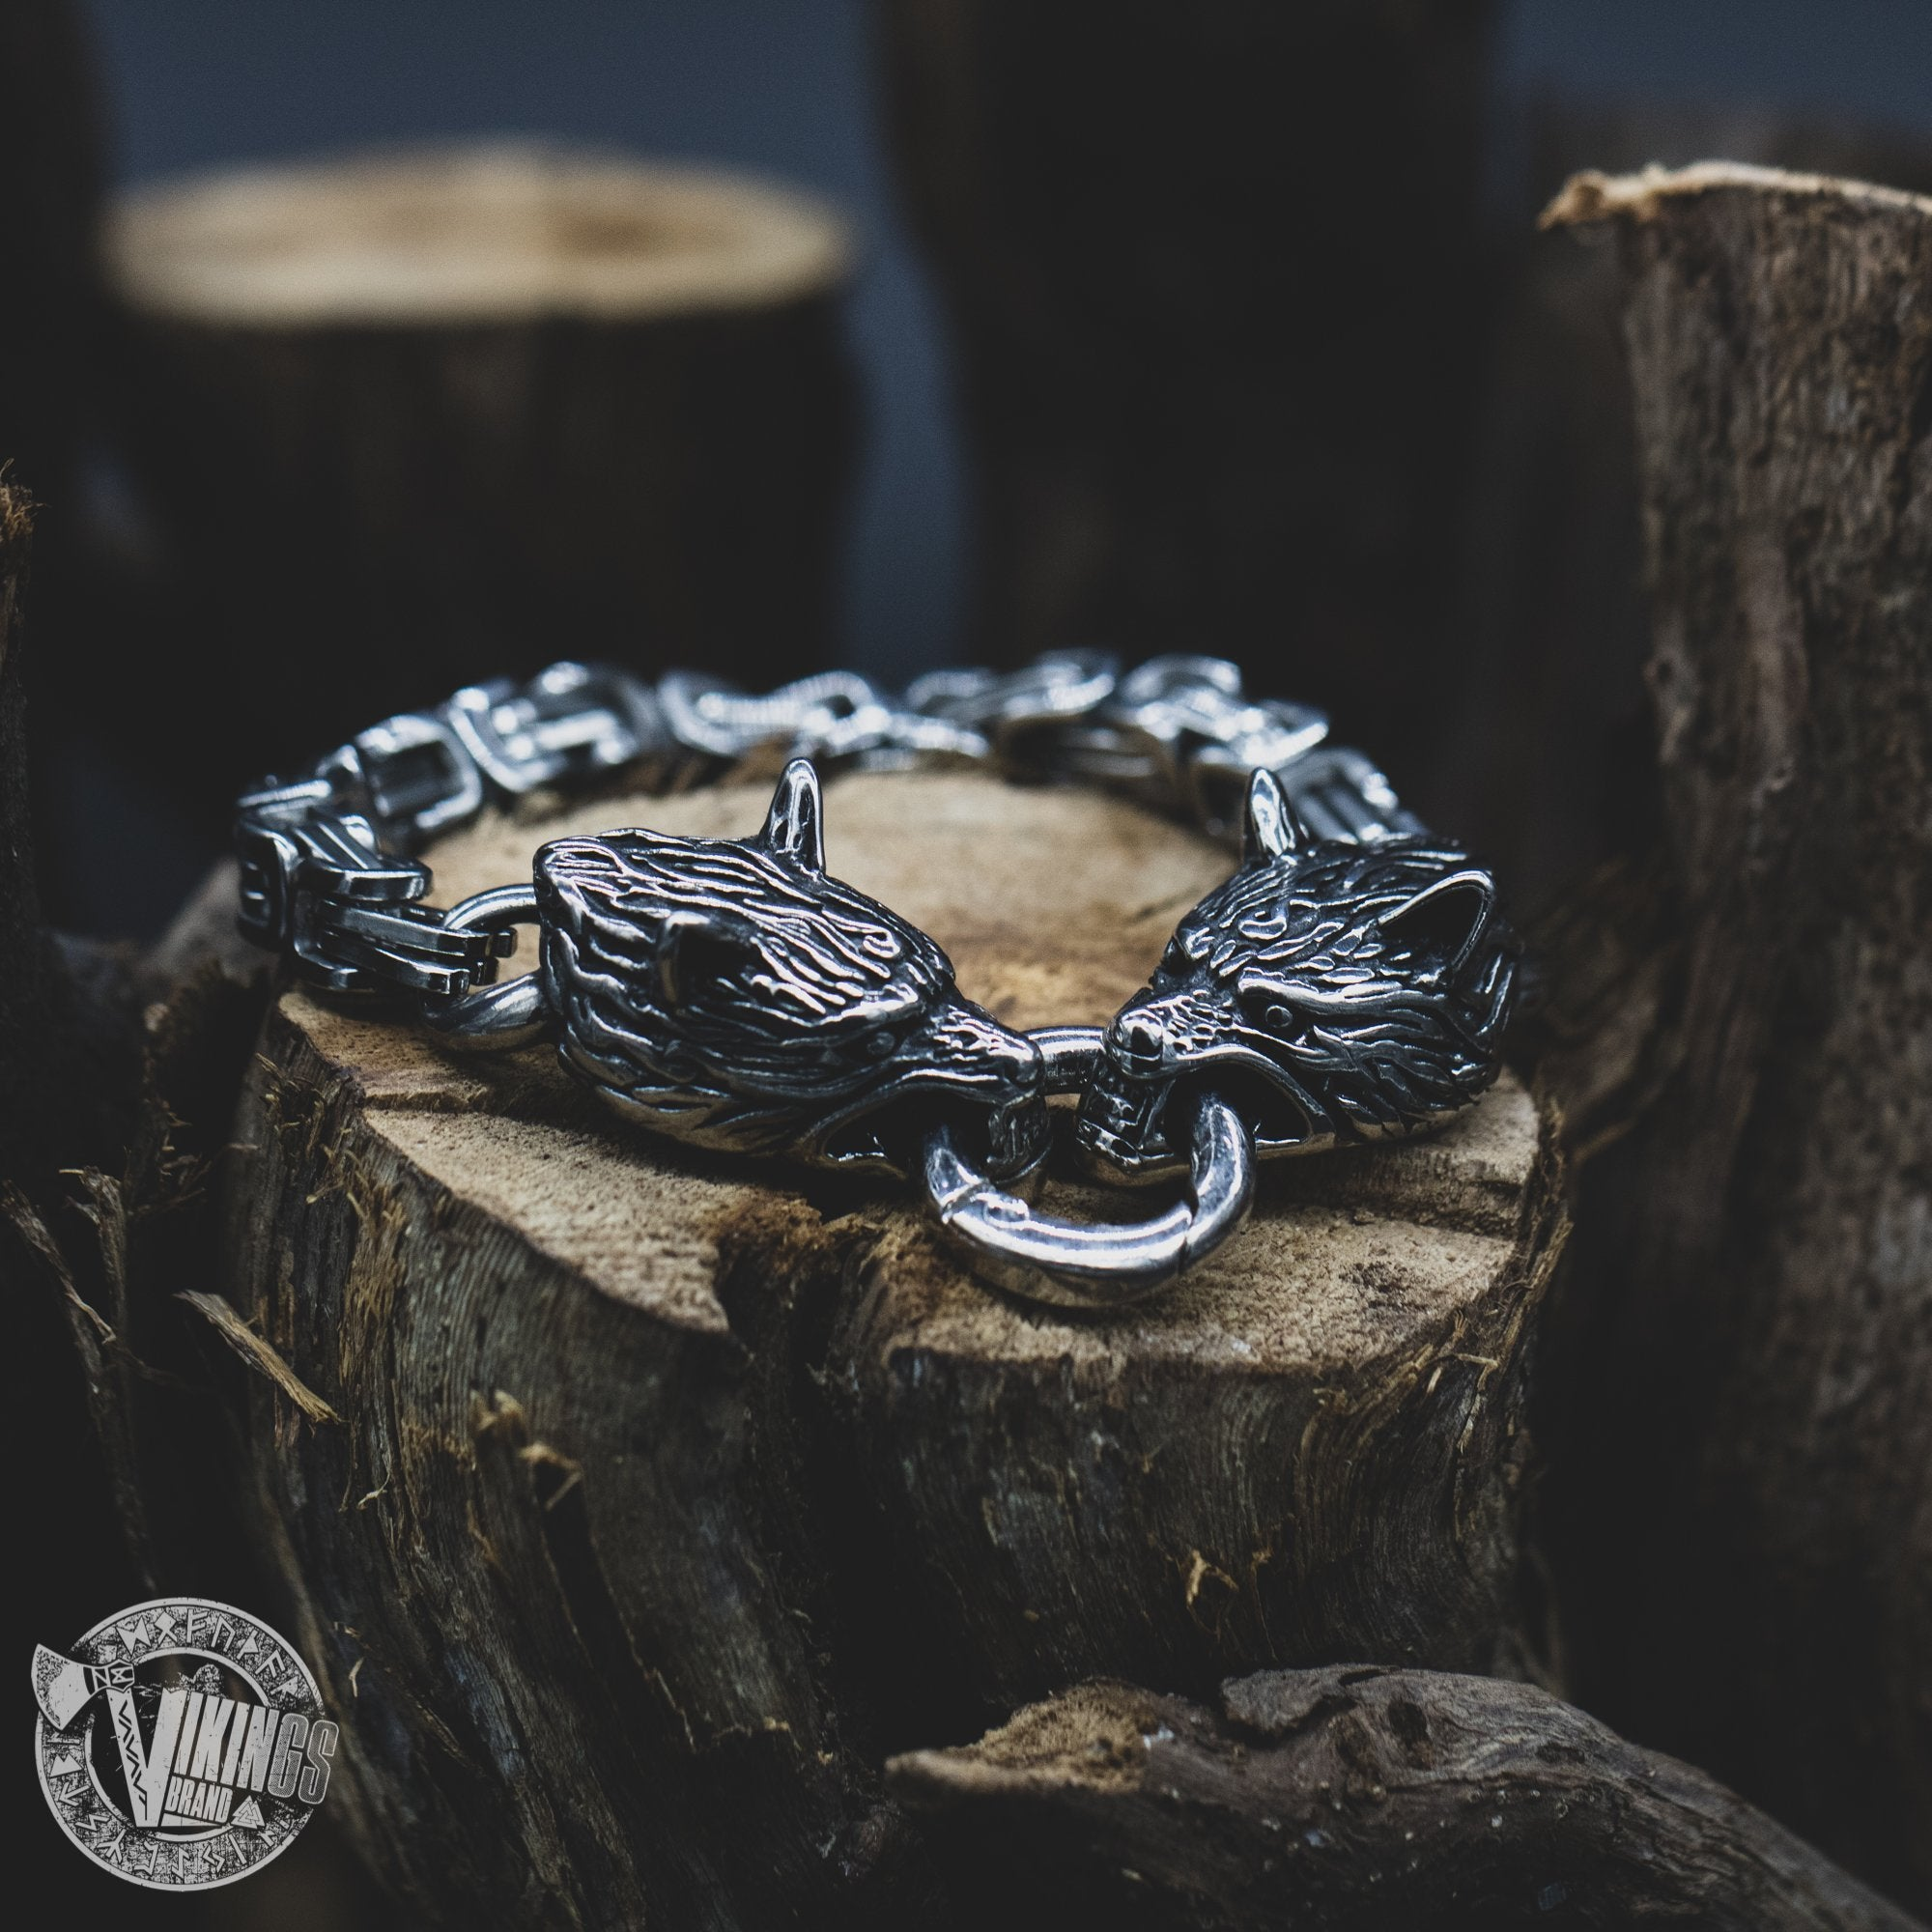 HANDMADE Stainless Steel Wolf Head Bracelet with King's Chain - VikingsBrand